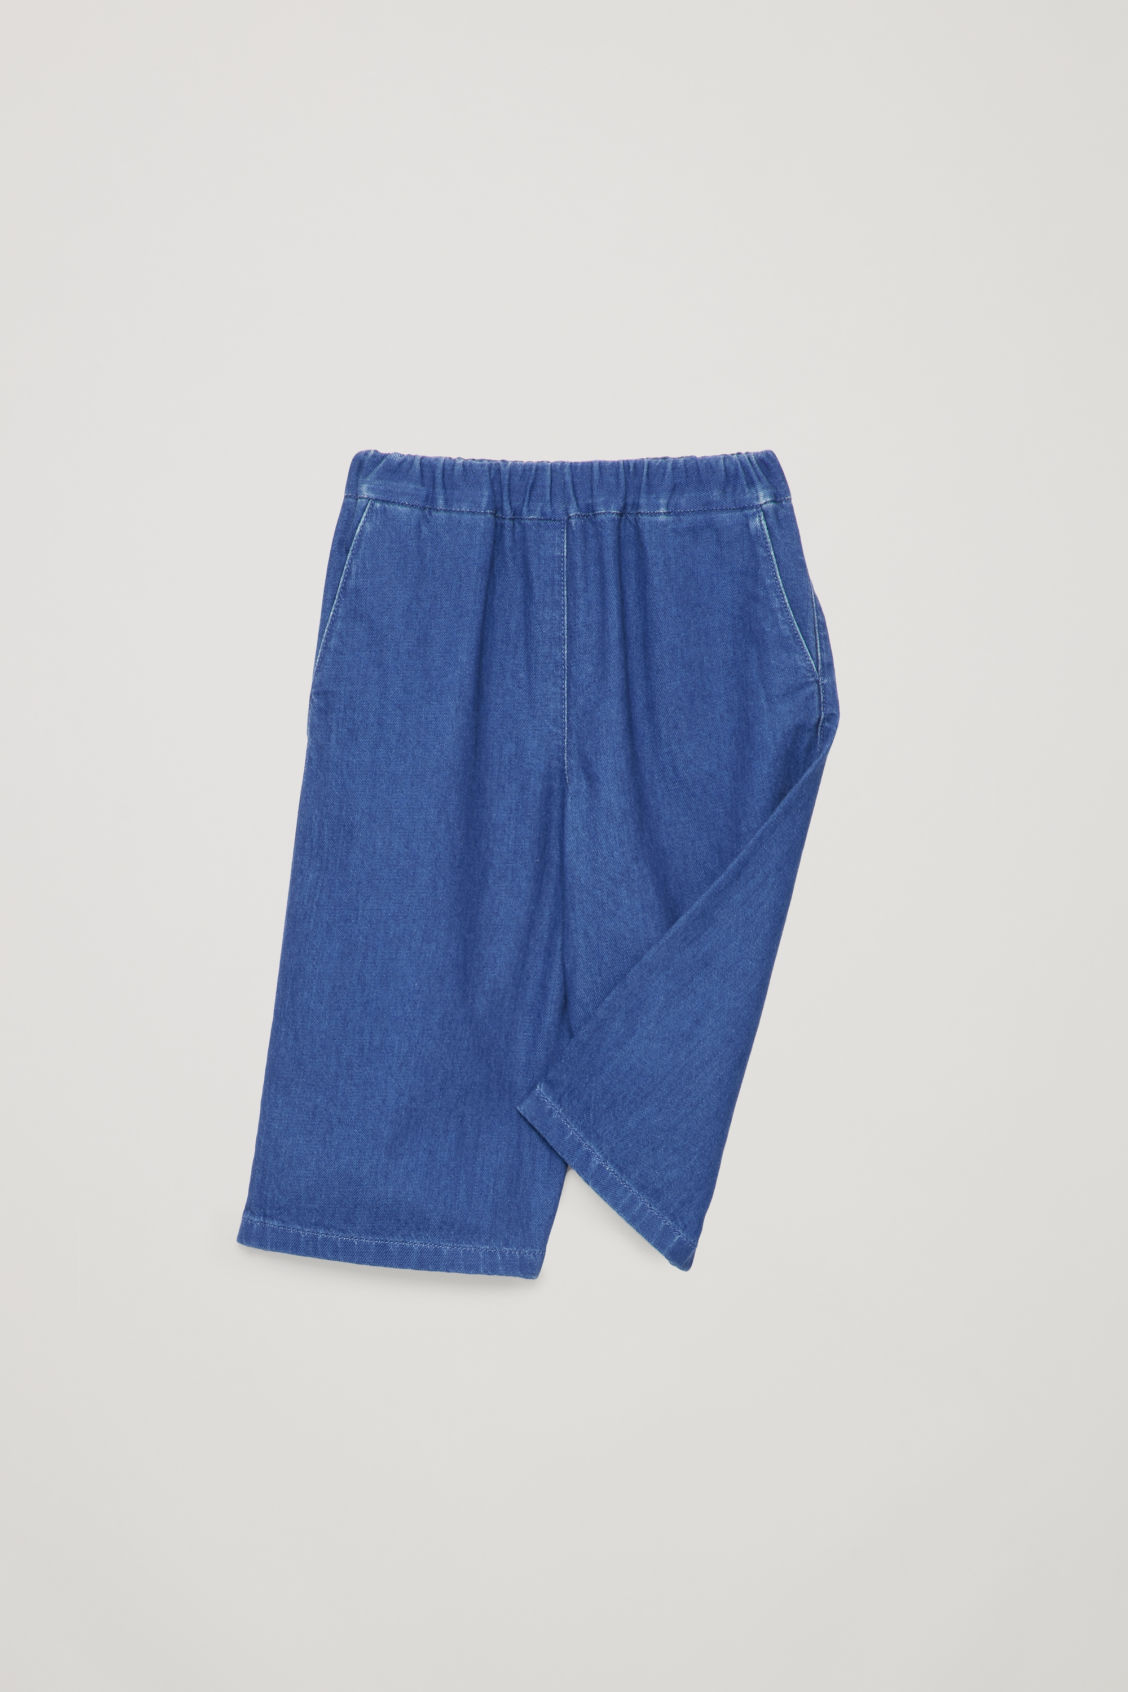 Detailed image of Cos wide-leg trousers in blue